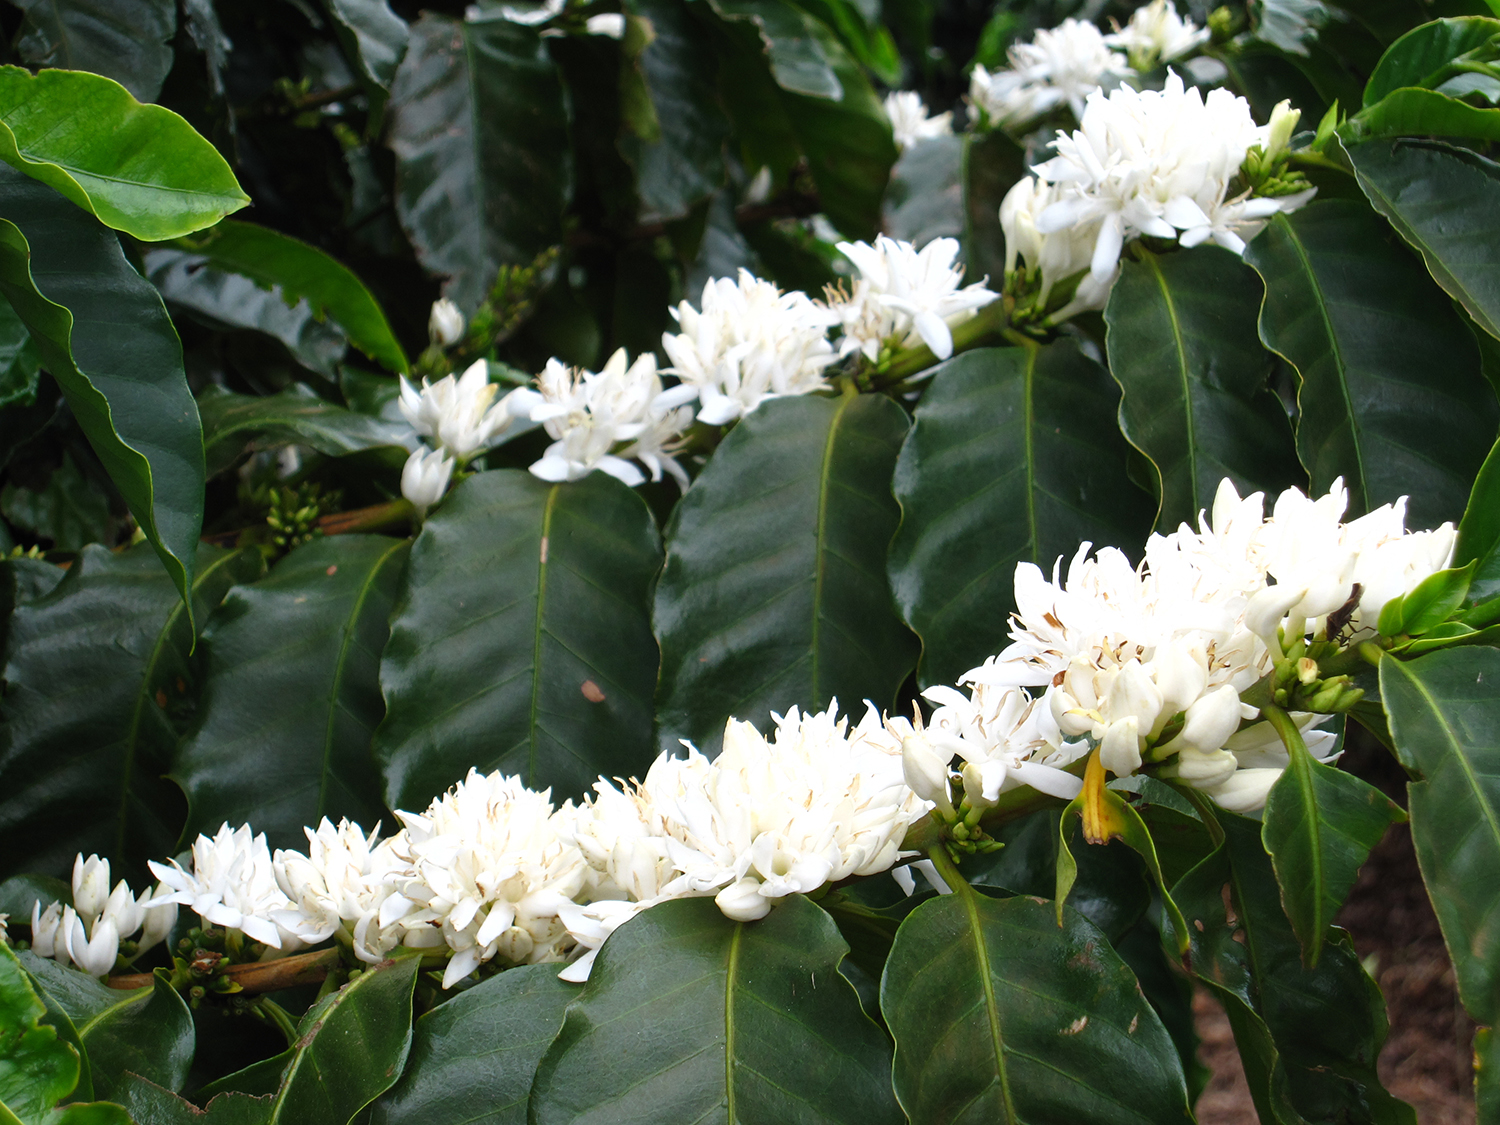 Flower blossoms on coffee tree prior to fruit formation.